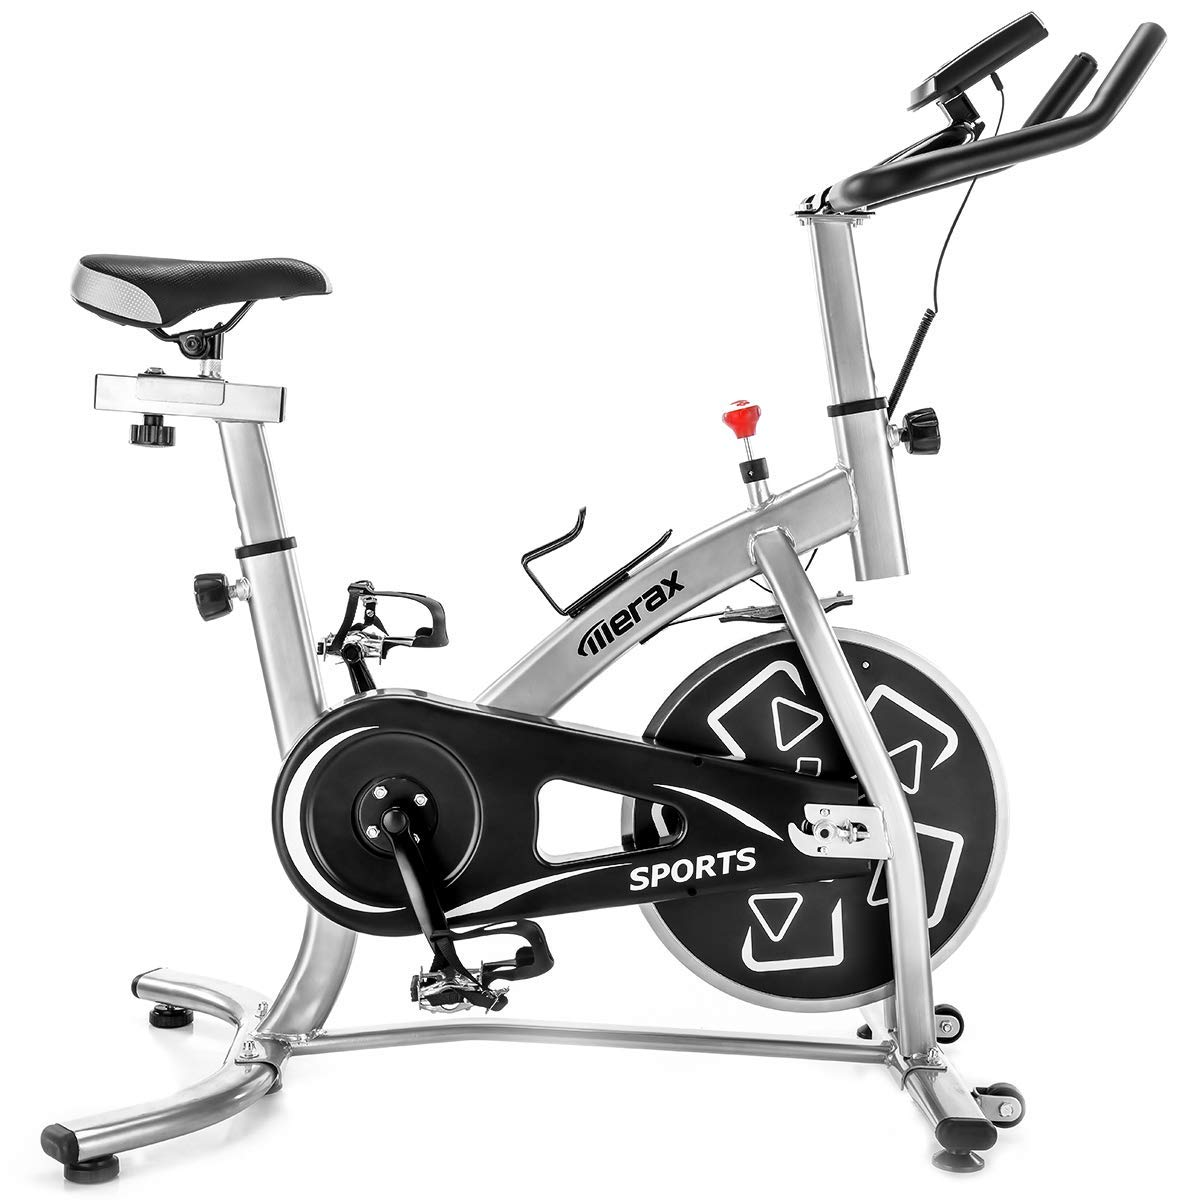 Merax Indoor Cycling Bike Smooth Quiet Belt Drive Exercise Bike Stationary Bicycle Home Cardio Workout Bike with w Pulse Sensor, LED Monitor, Bottle Holder